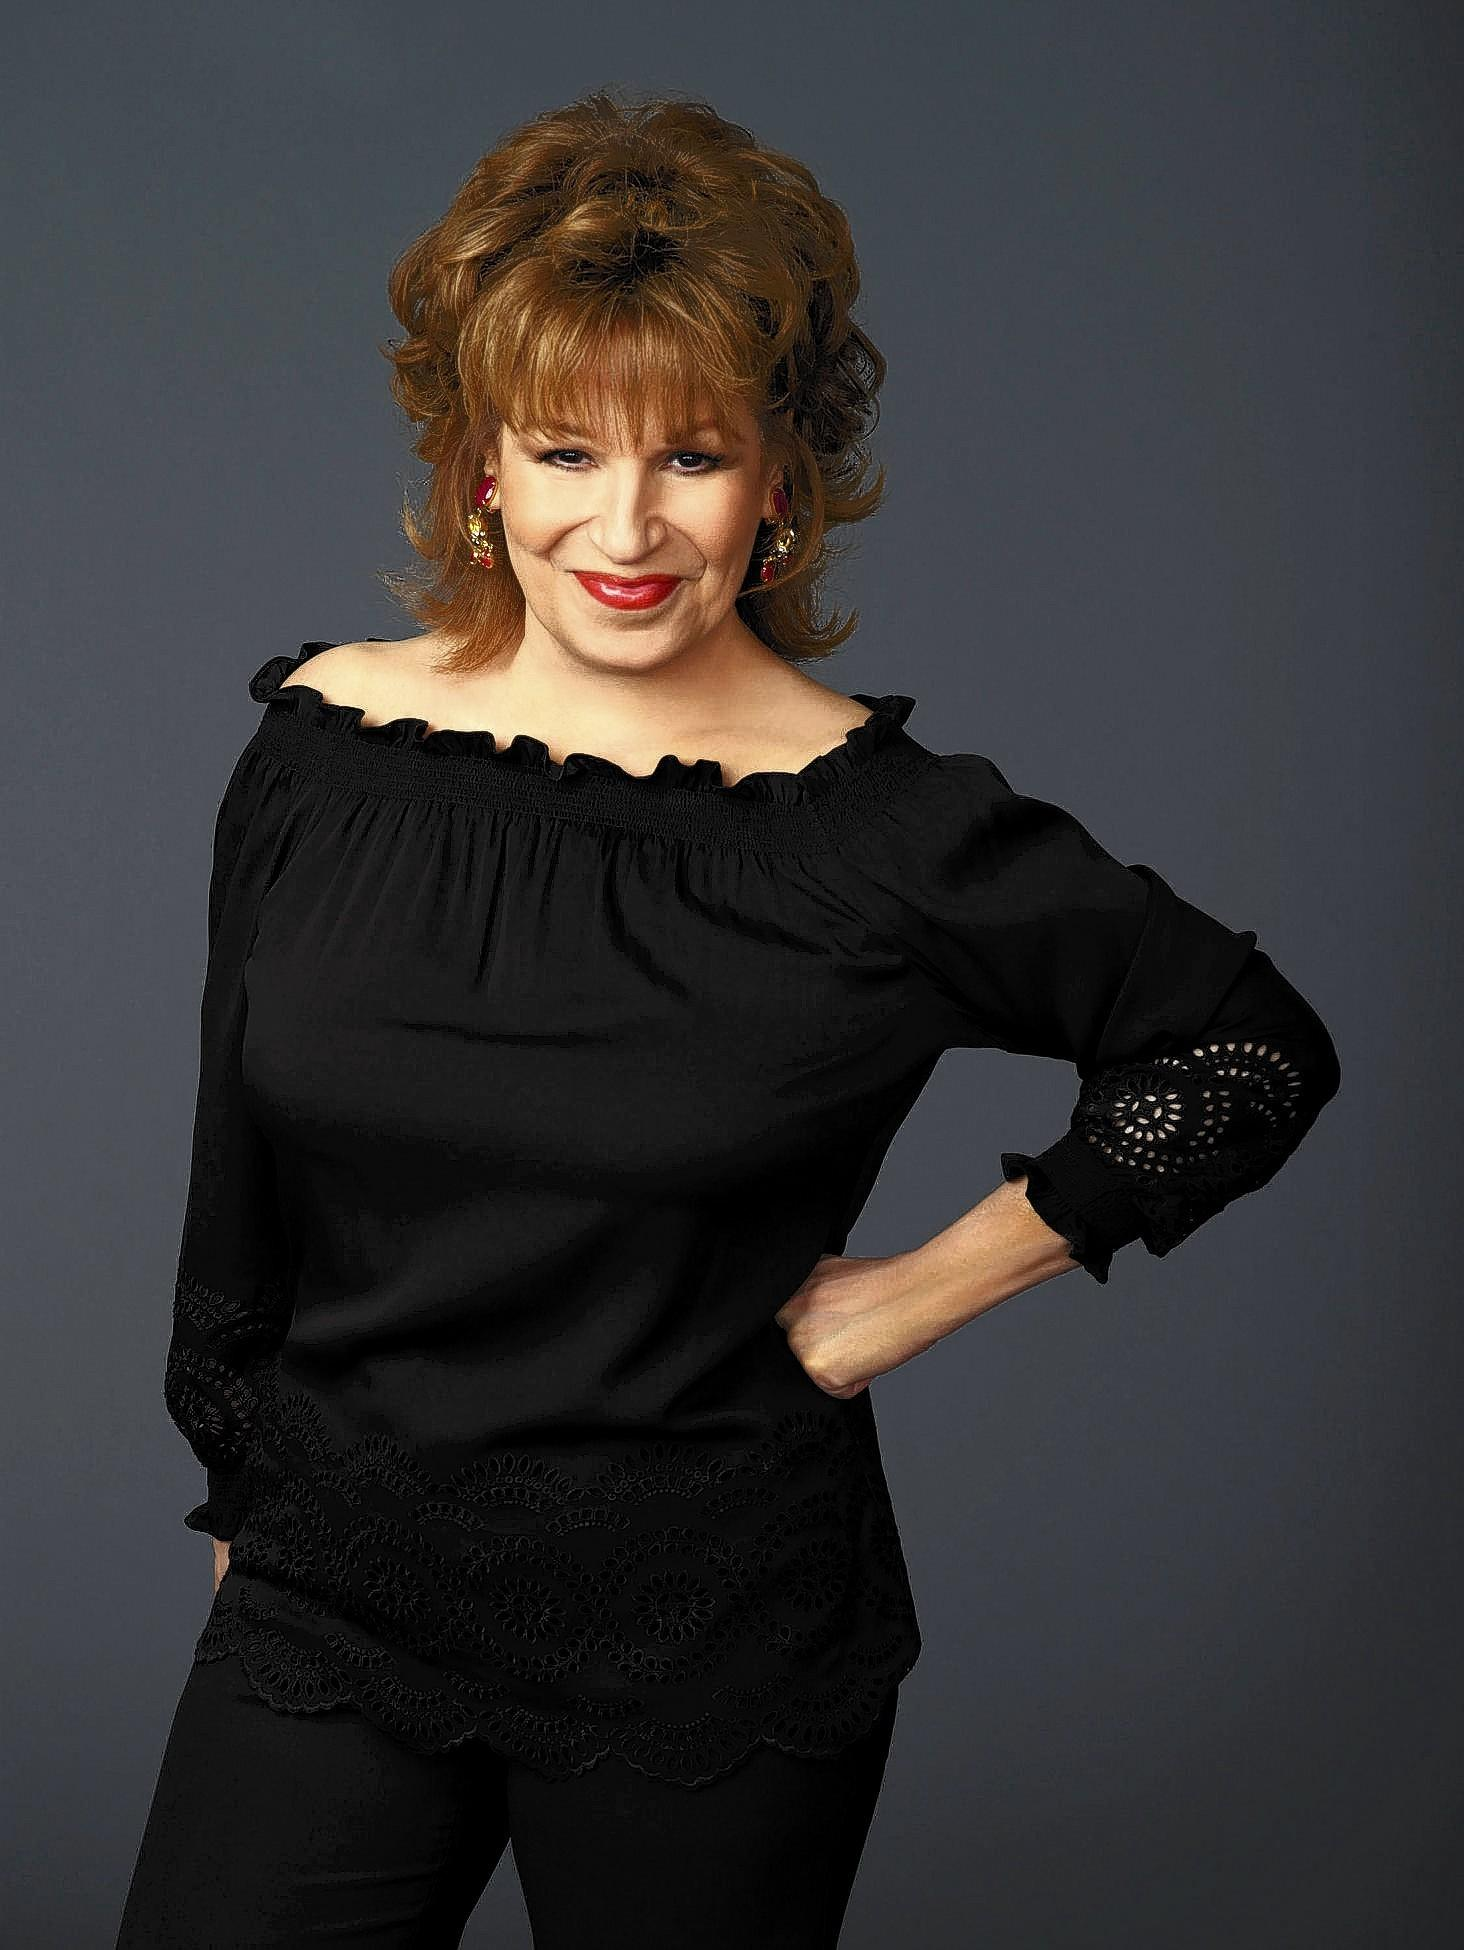 Comedian Joy Behar perform at Sands Bethlehem Event Center on Jan. 10.